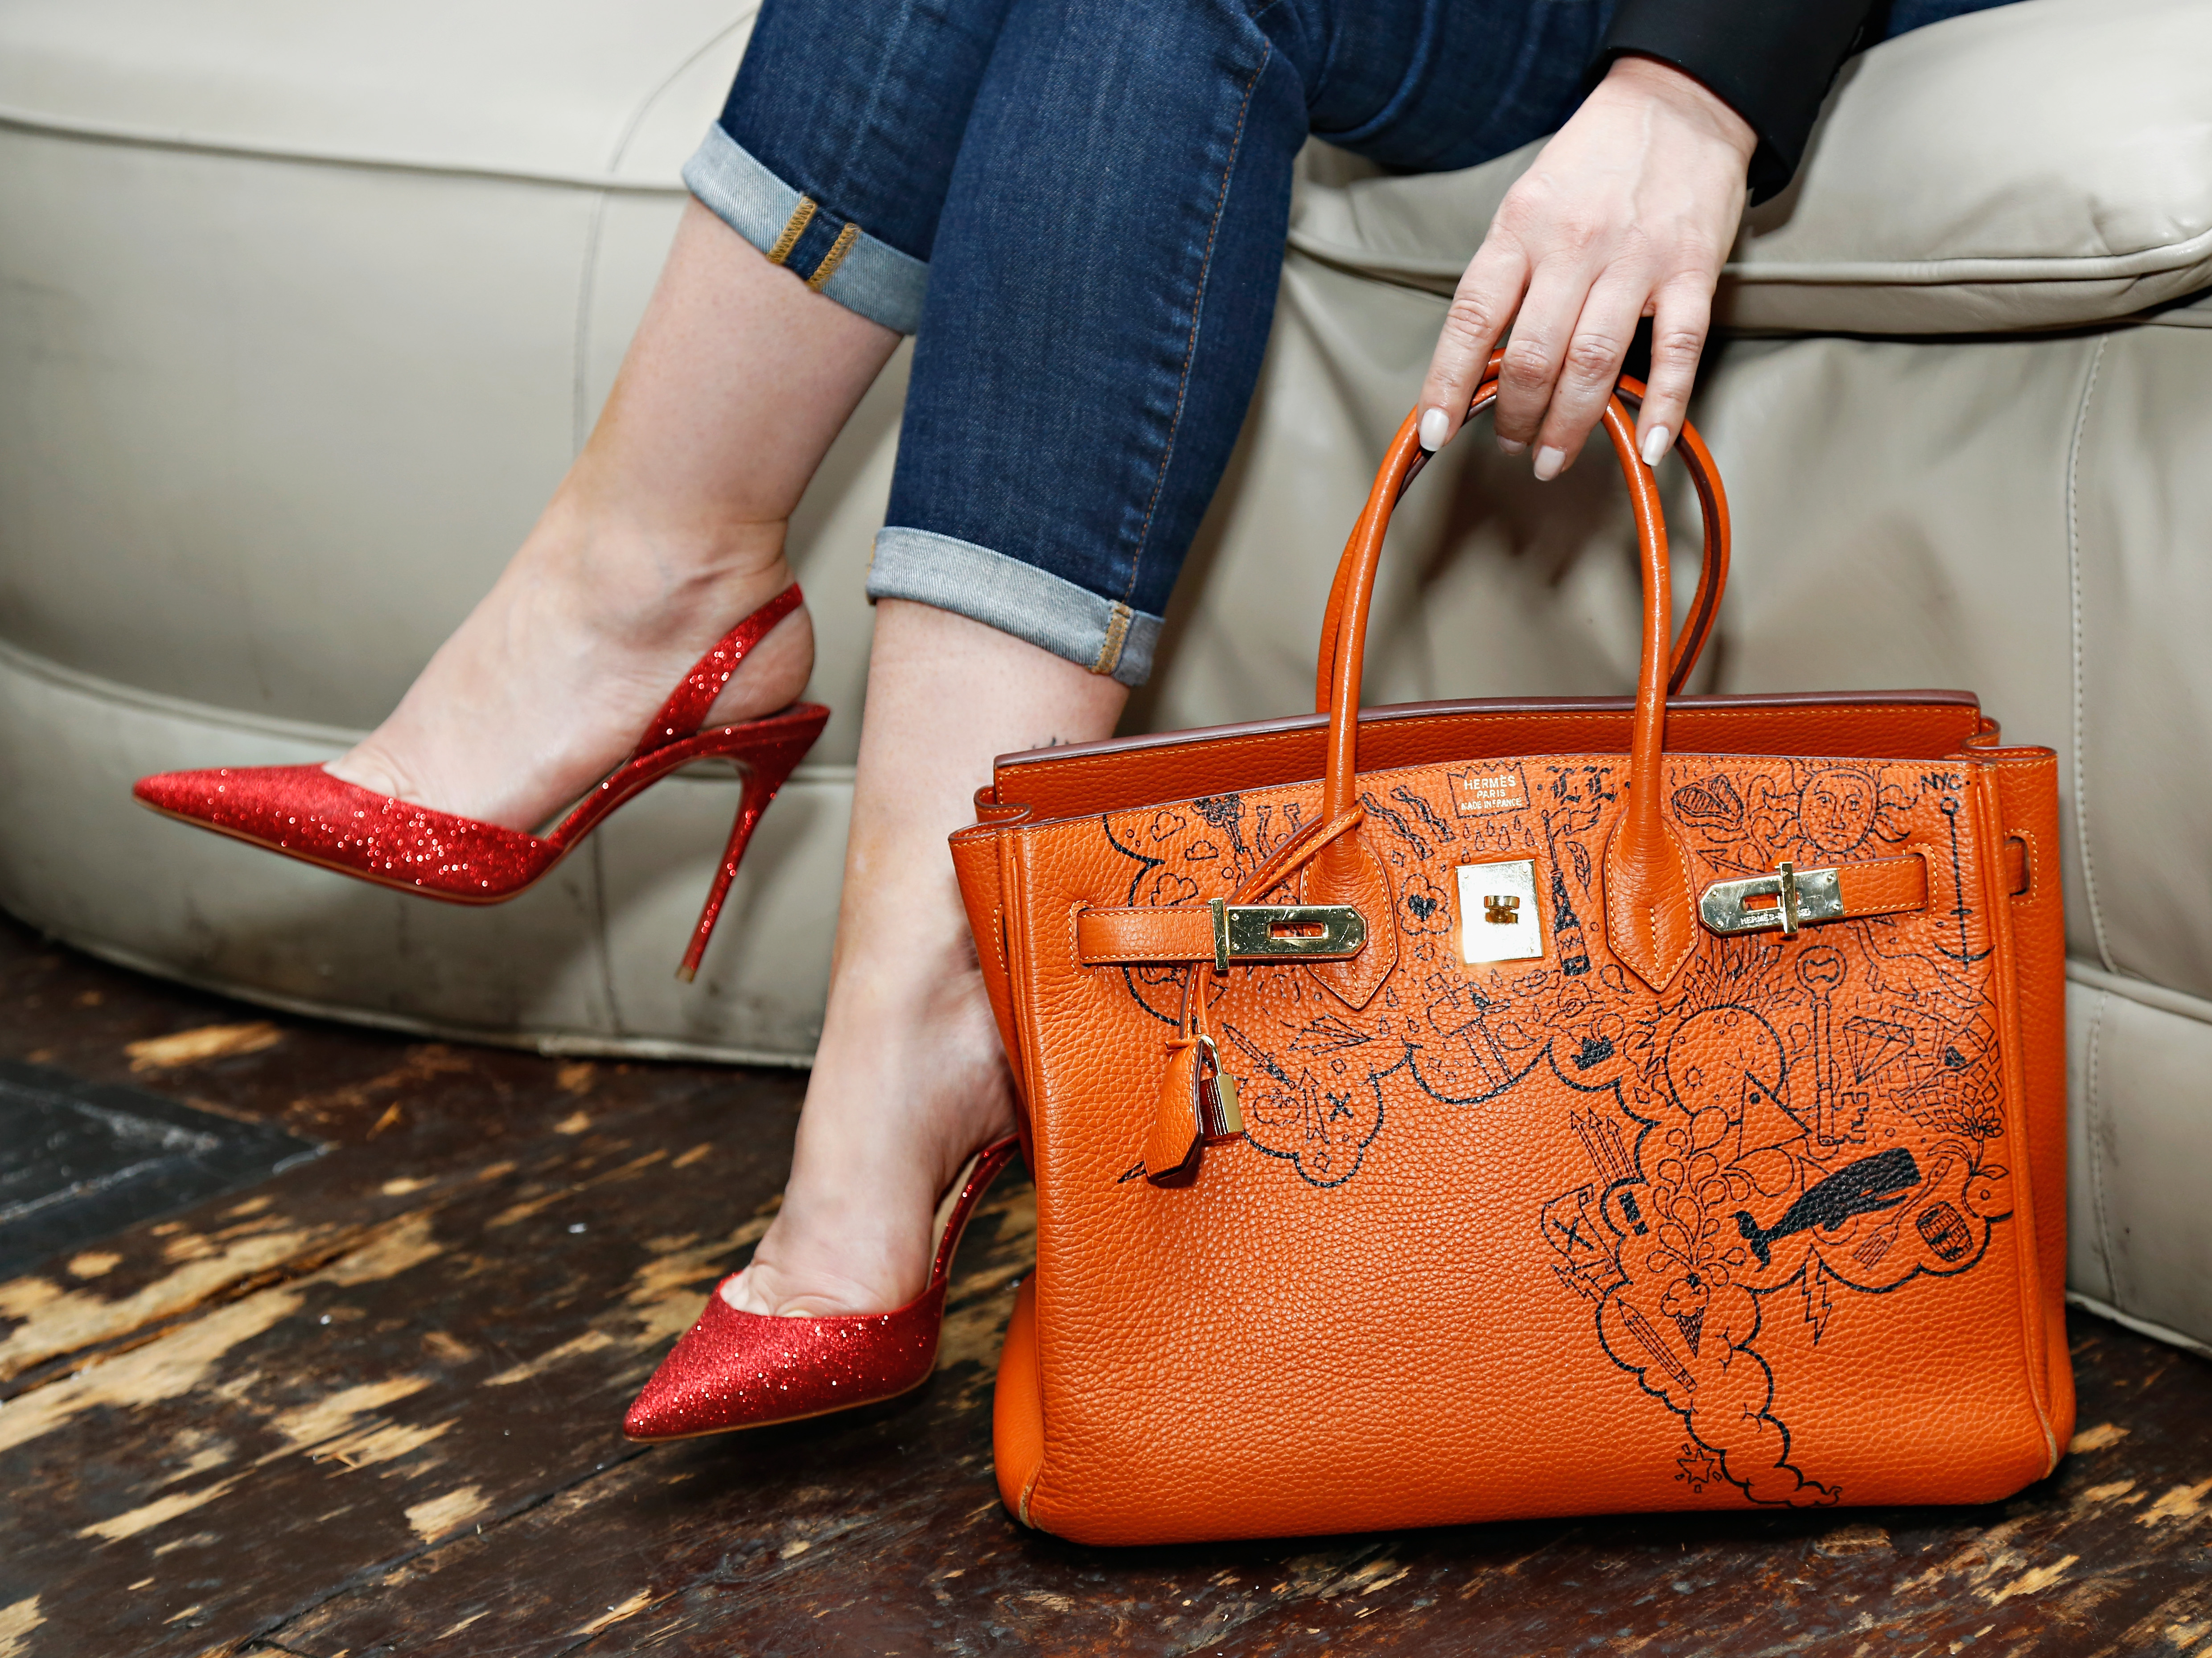 How Much Does A Hermes Birkin Bag Cost The Same As 32 500